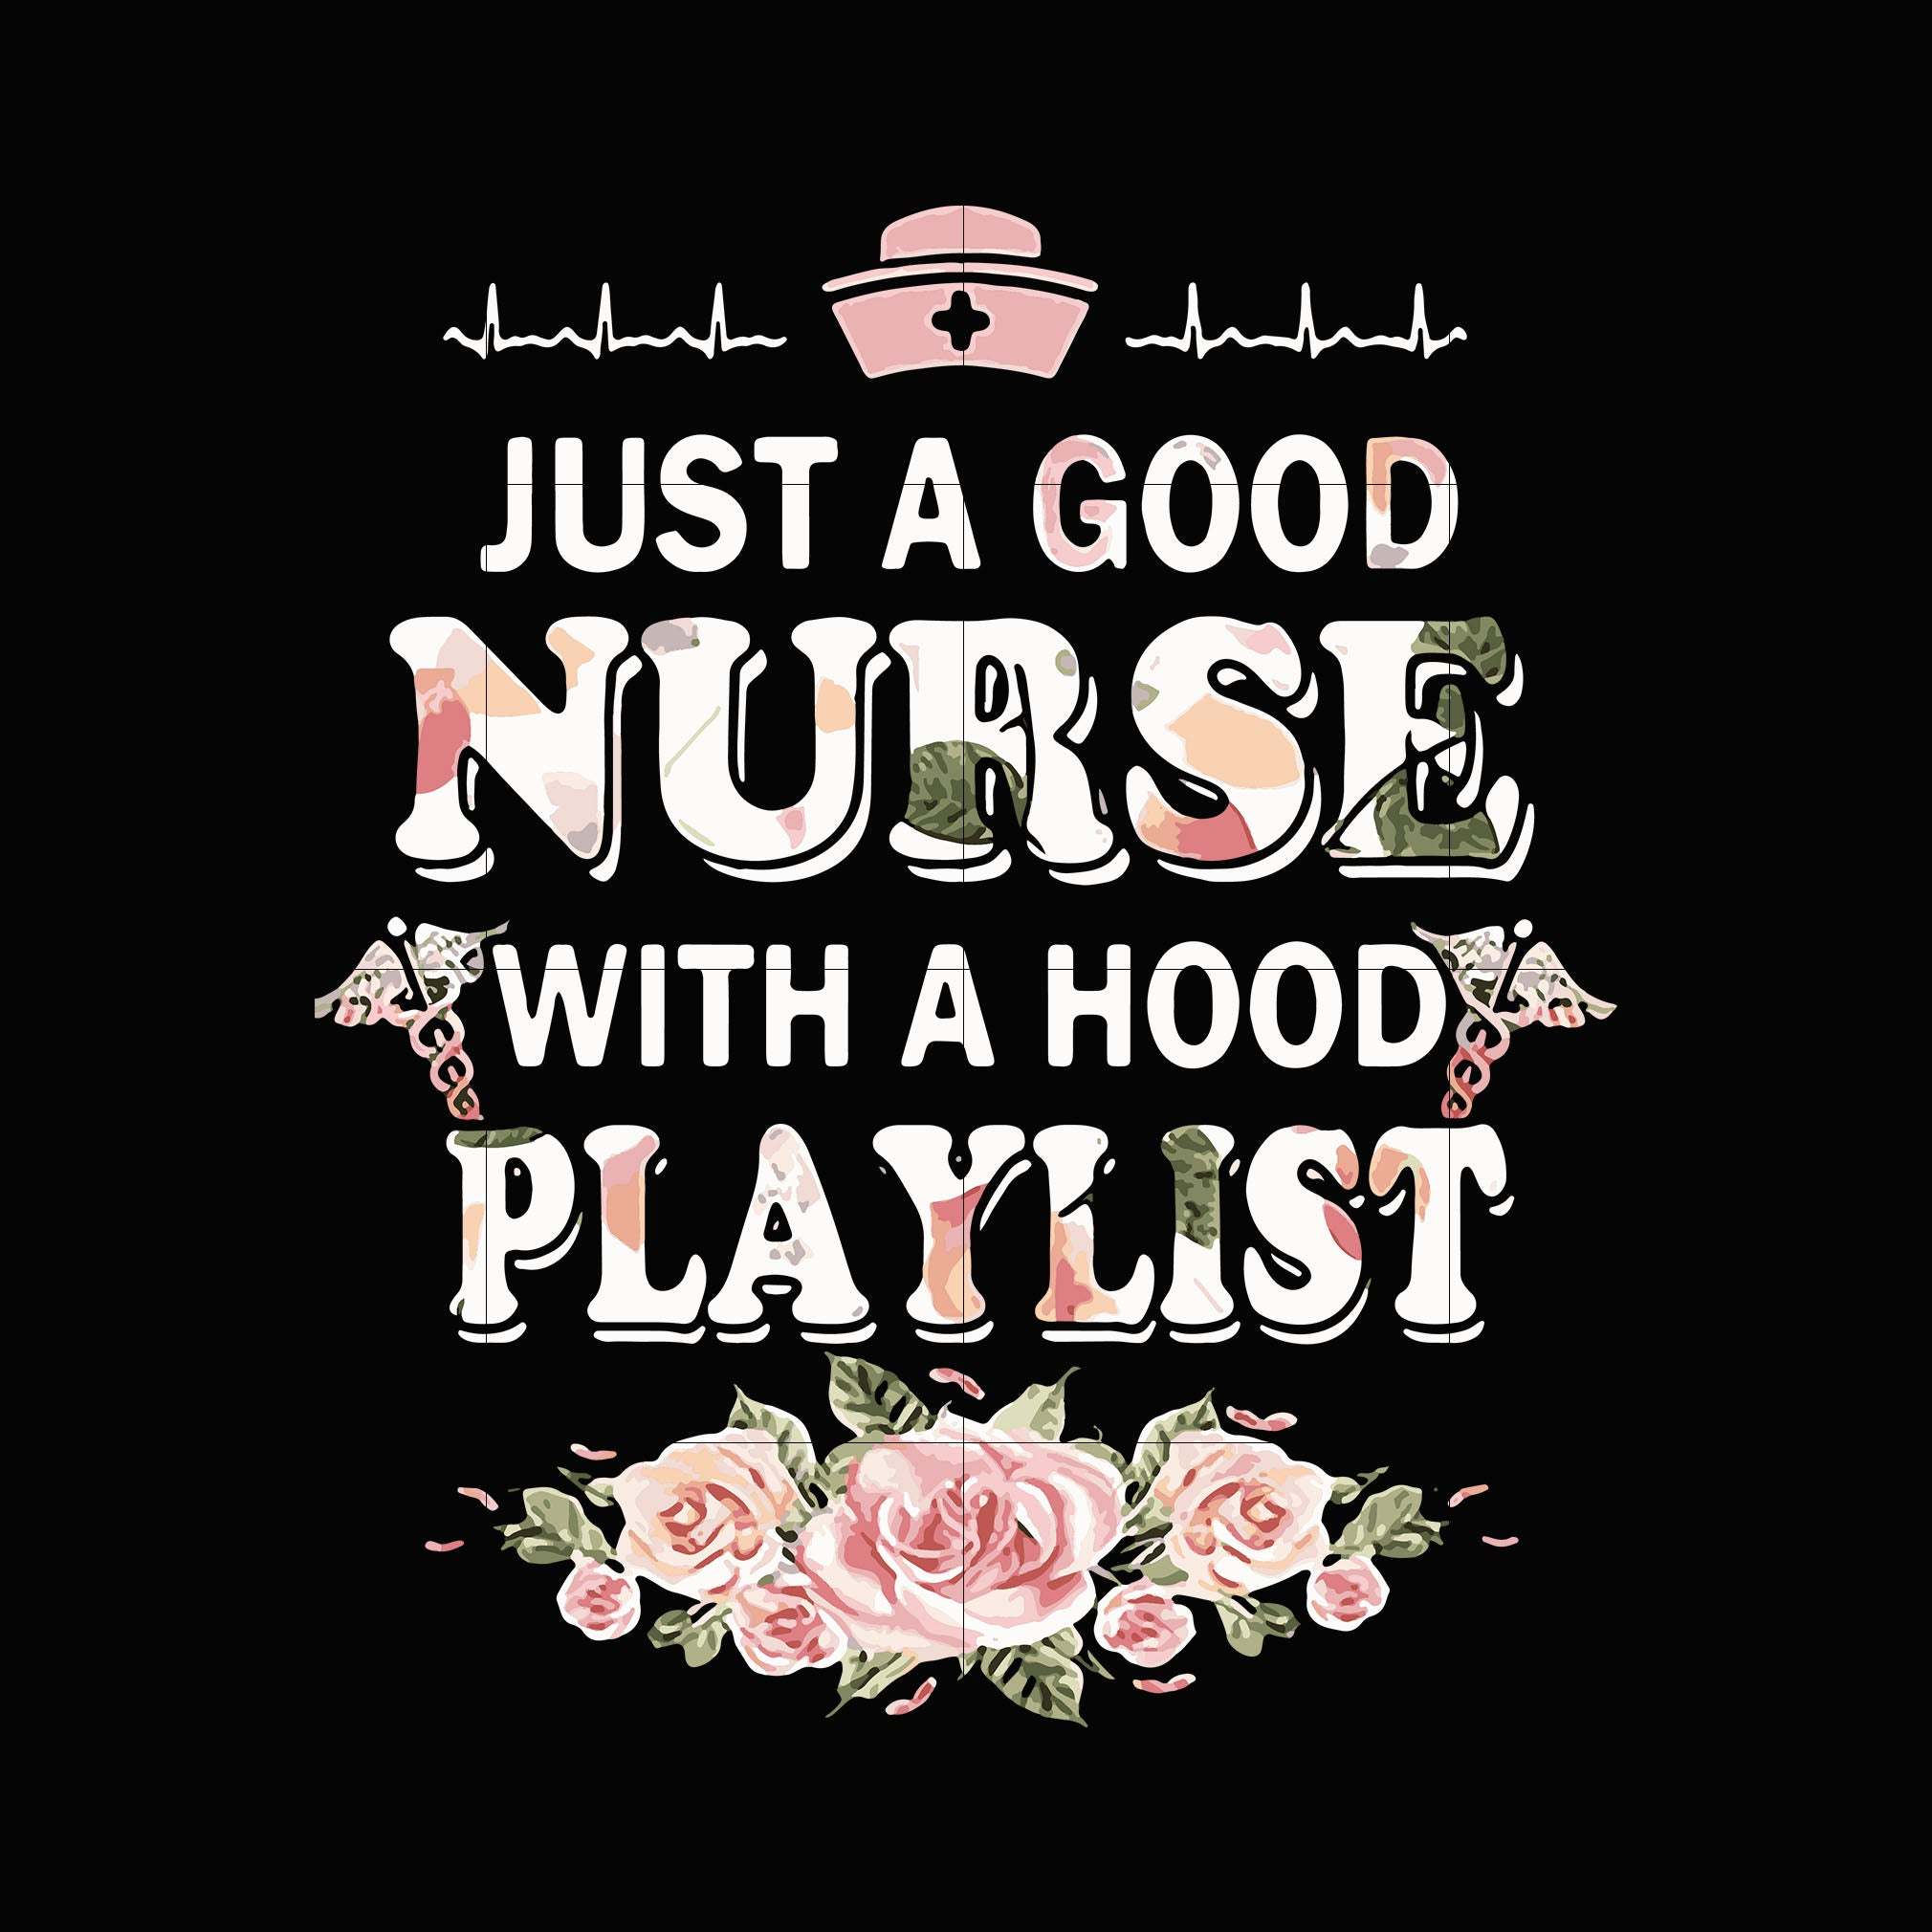 Just a good nurse with a hood playlist svg,dxf,eps,png digital file